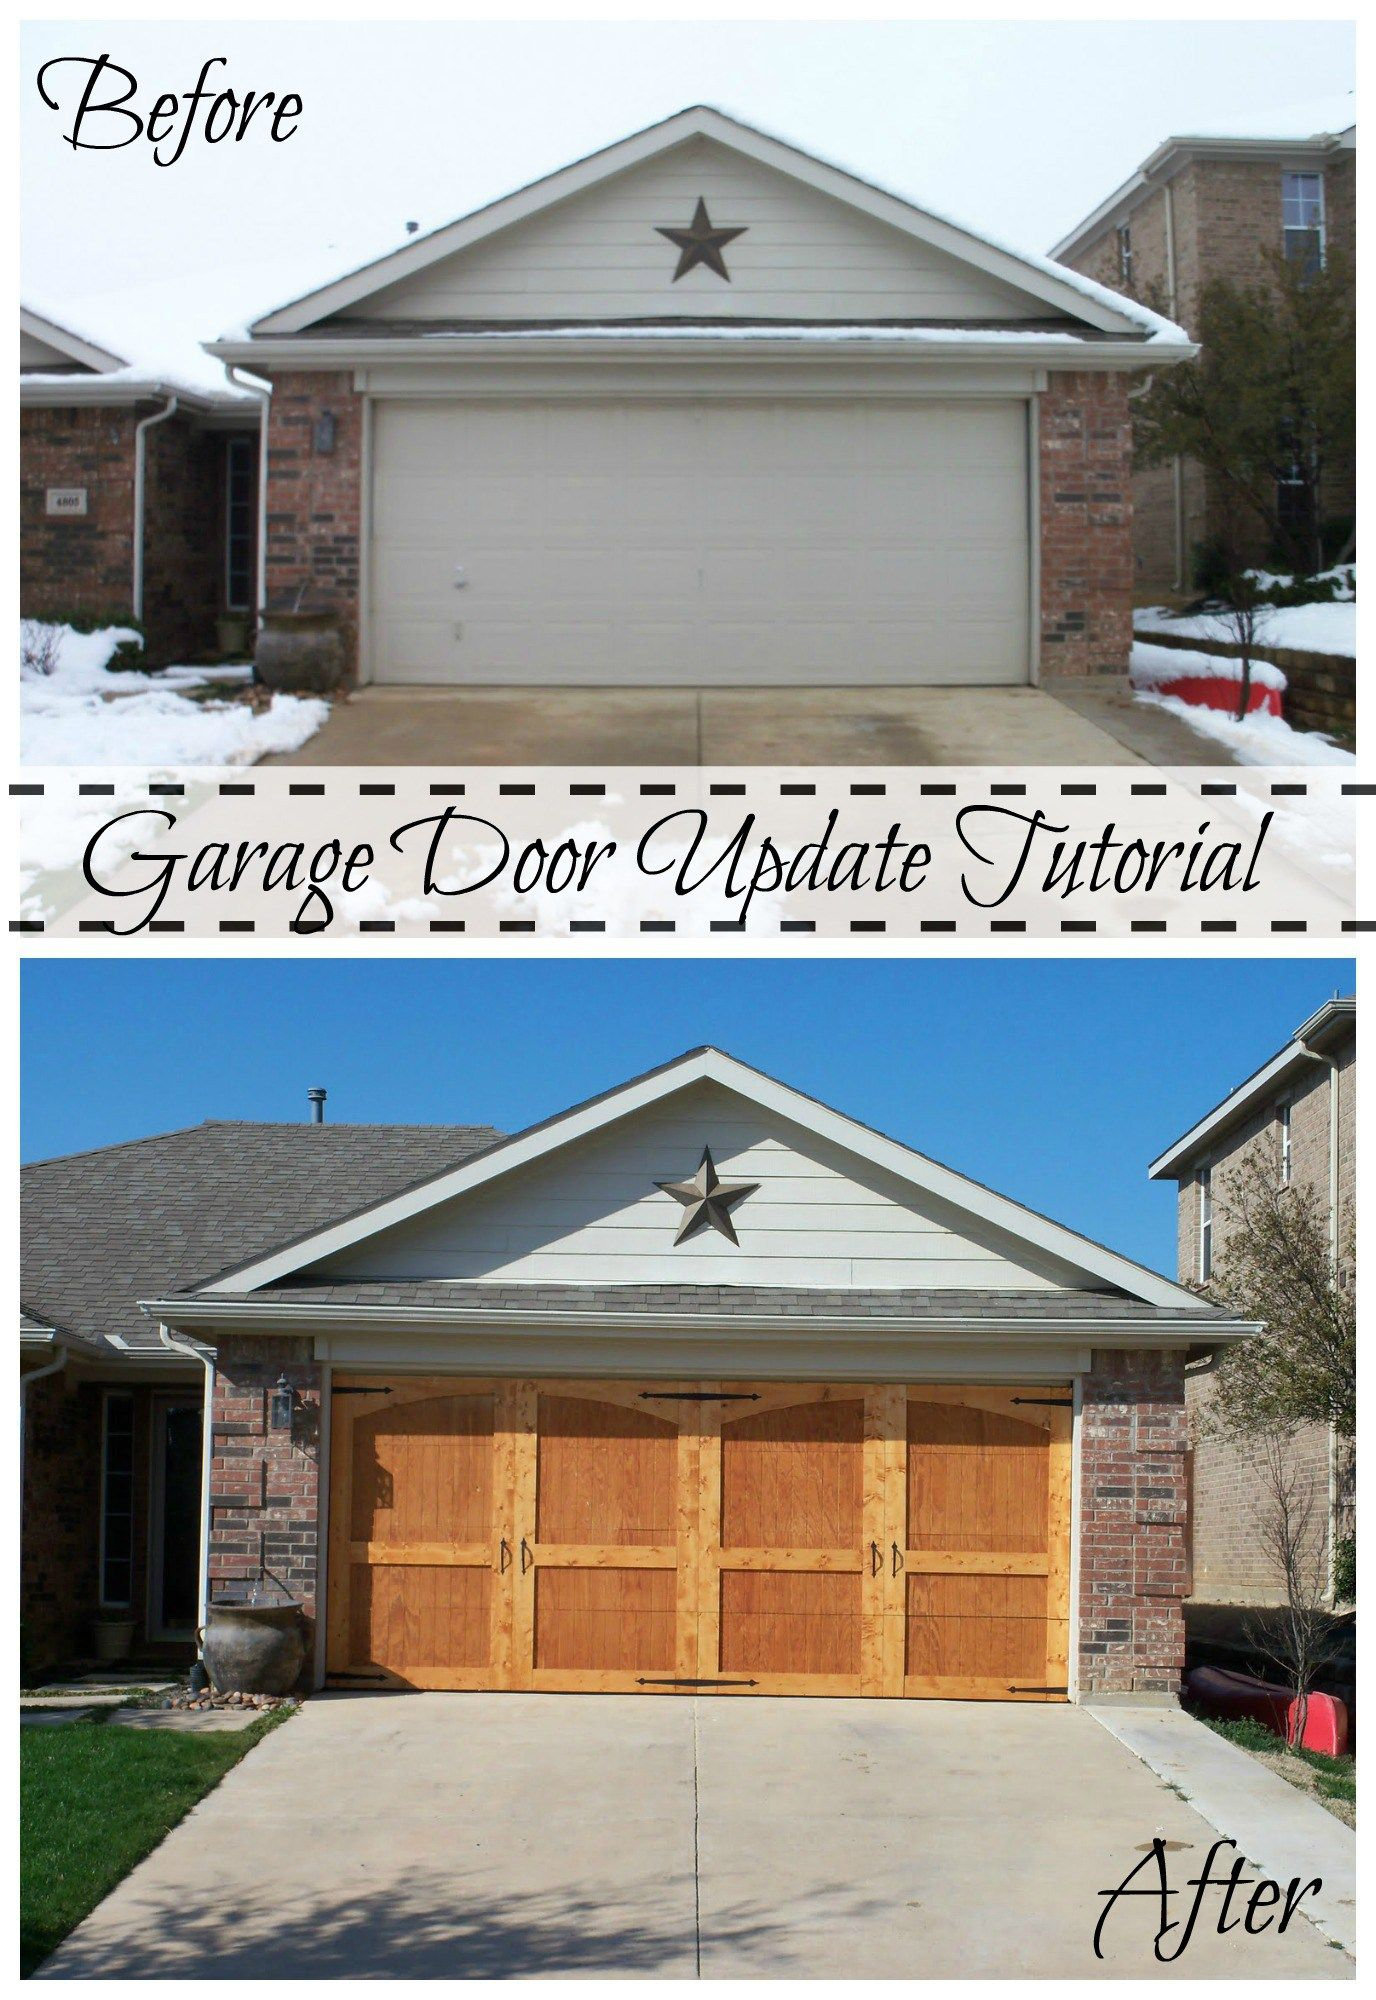 Garage Door Update Tutorial 1 Diy garage door, Garage